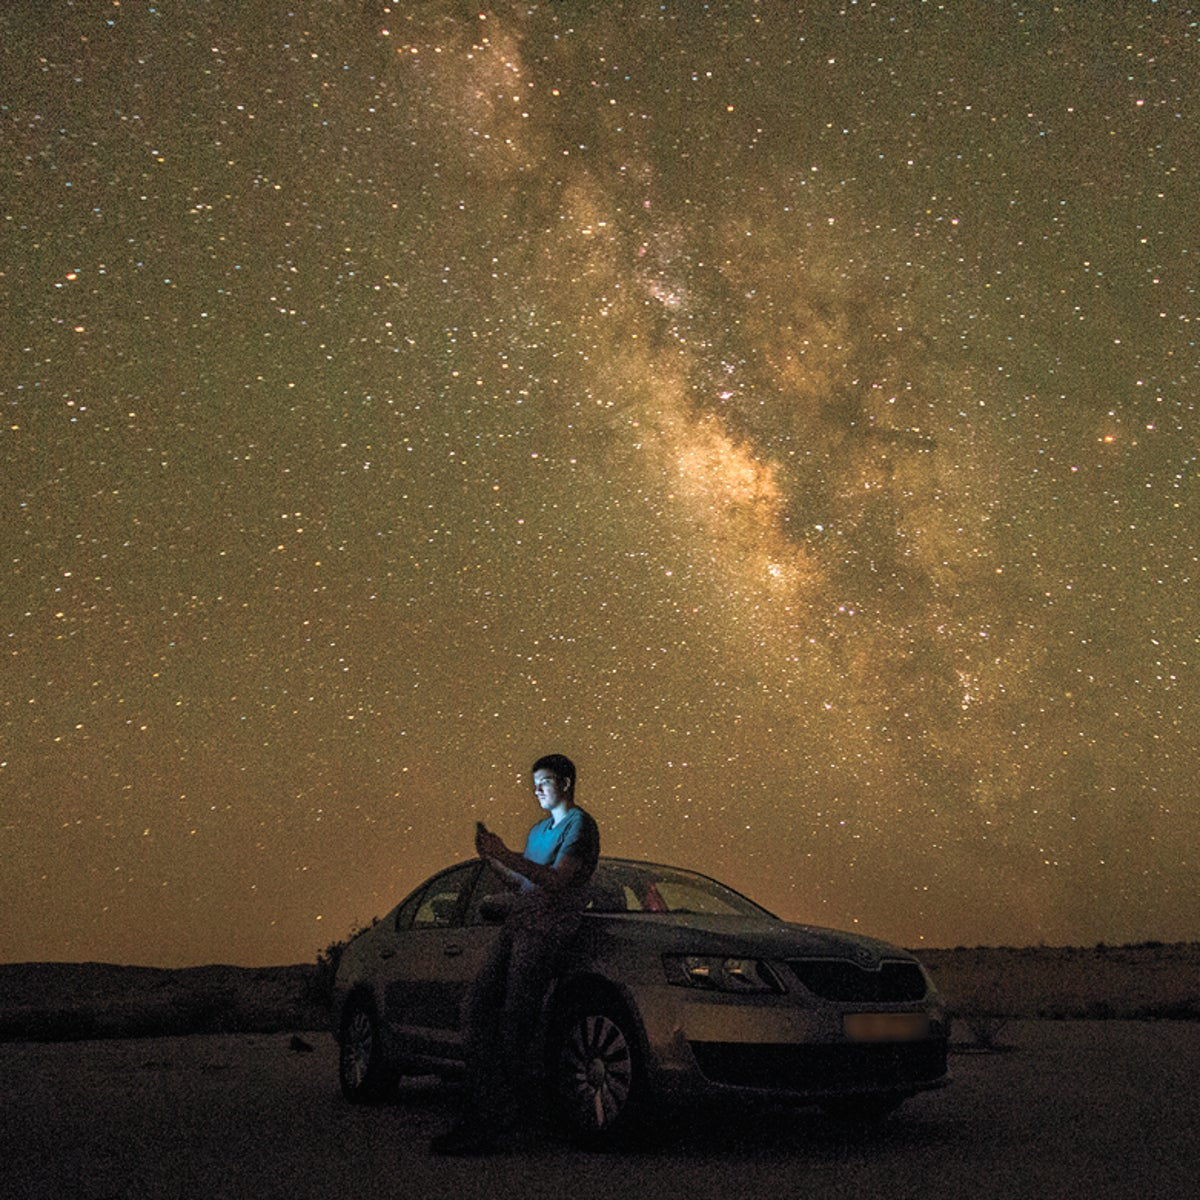 A Perseid meteor shower lights up the night sky in Mitzpeh Ramon.